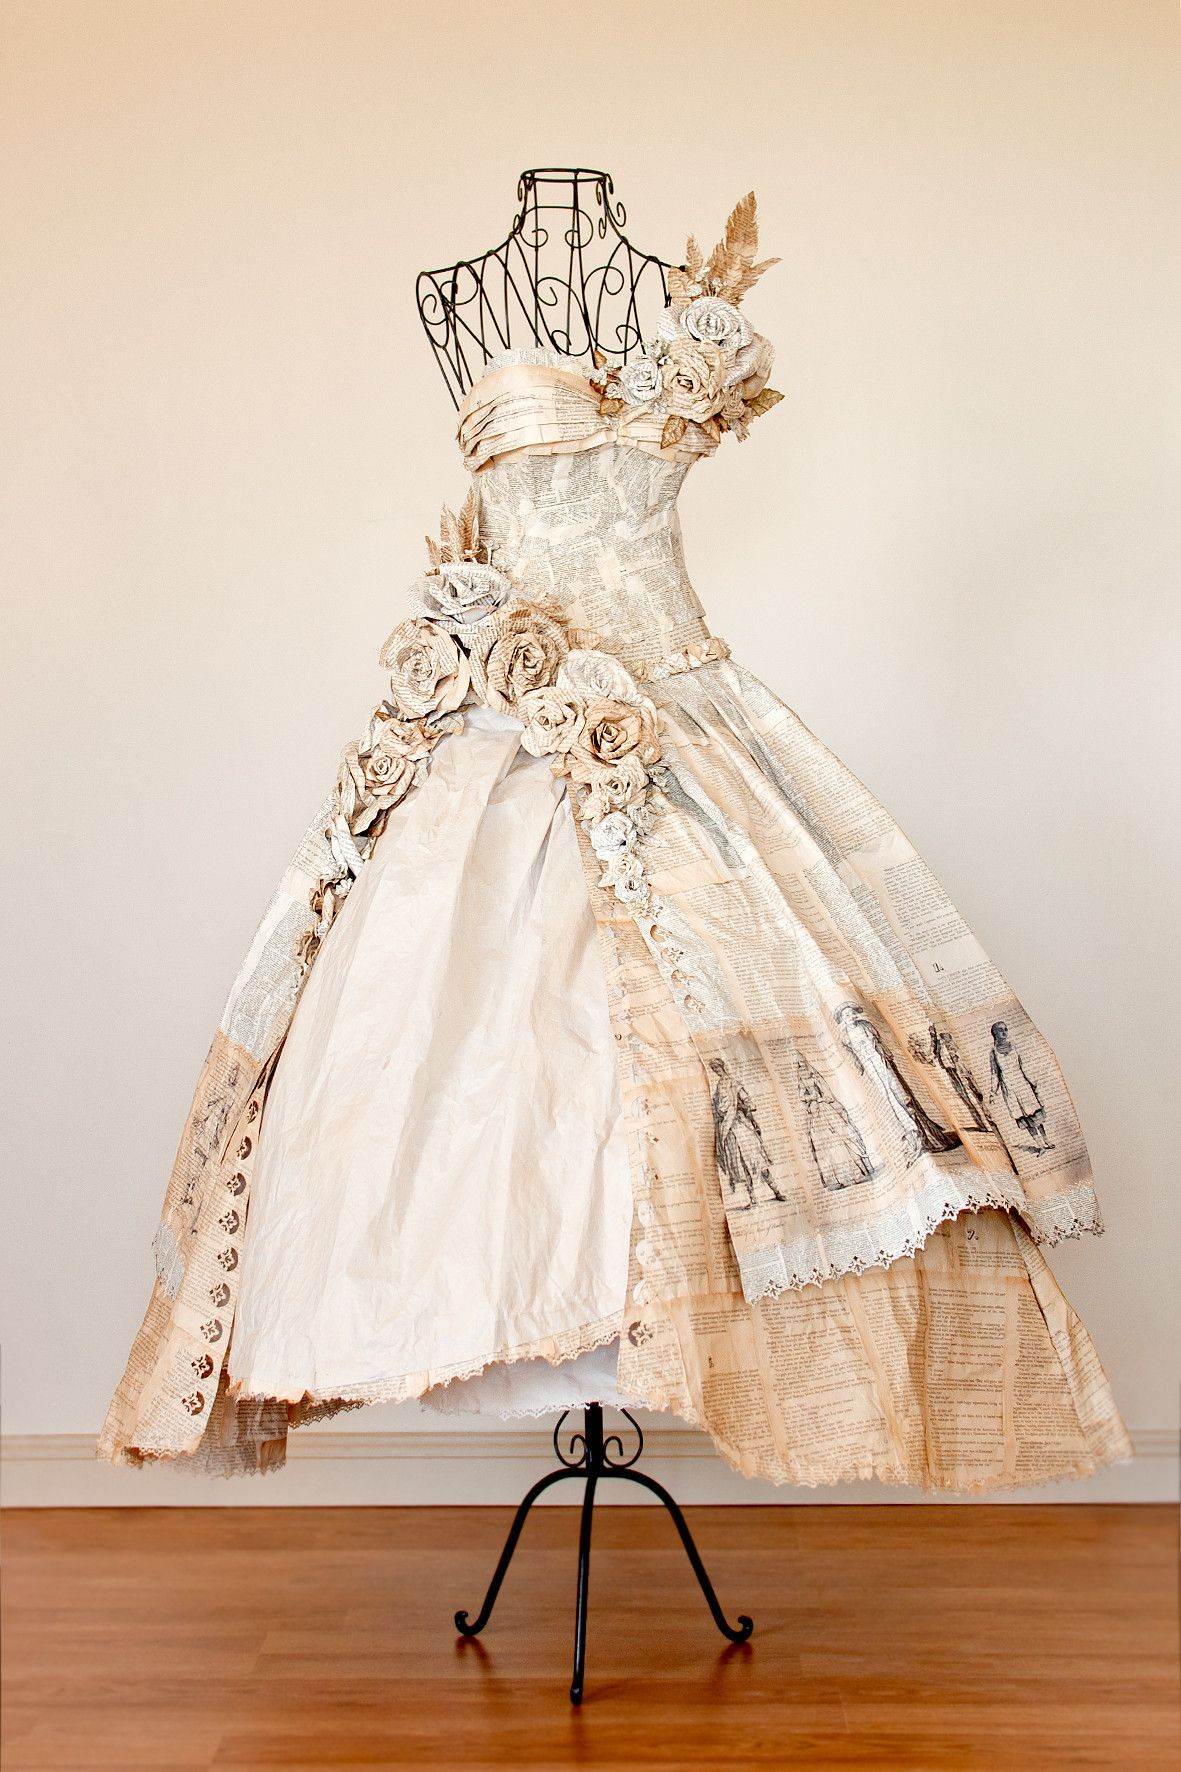 So I Made This Dress Entirely Out Of Book Pages For A Local Art Compeion Didn T Win Anything